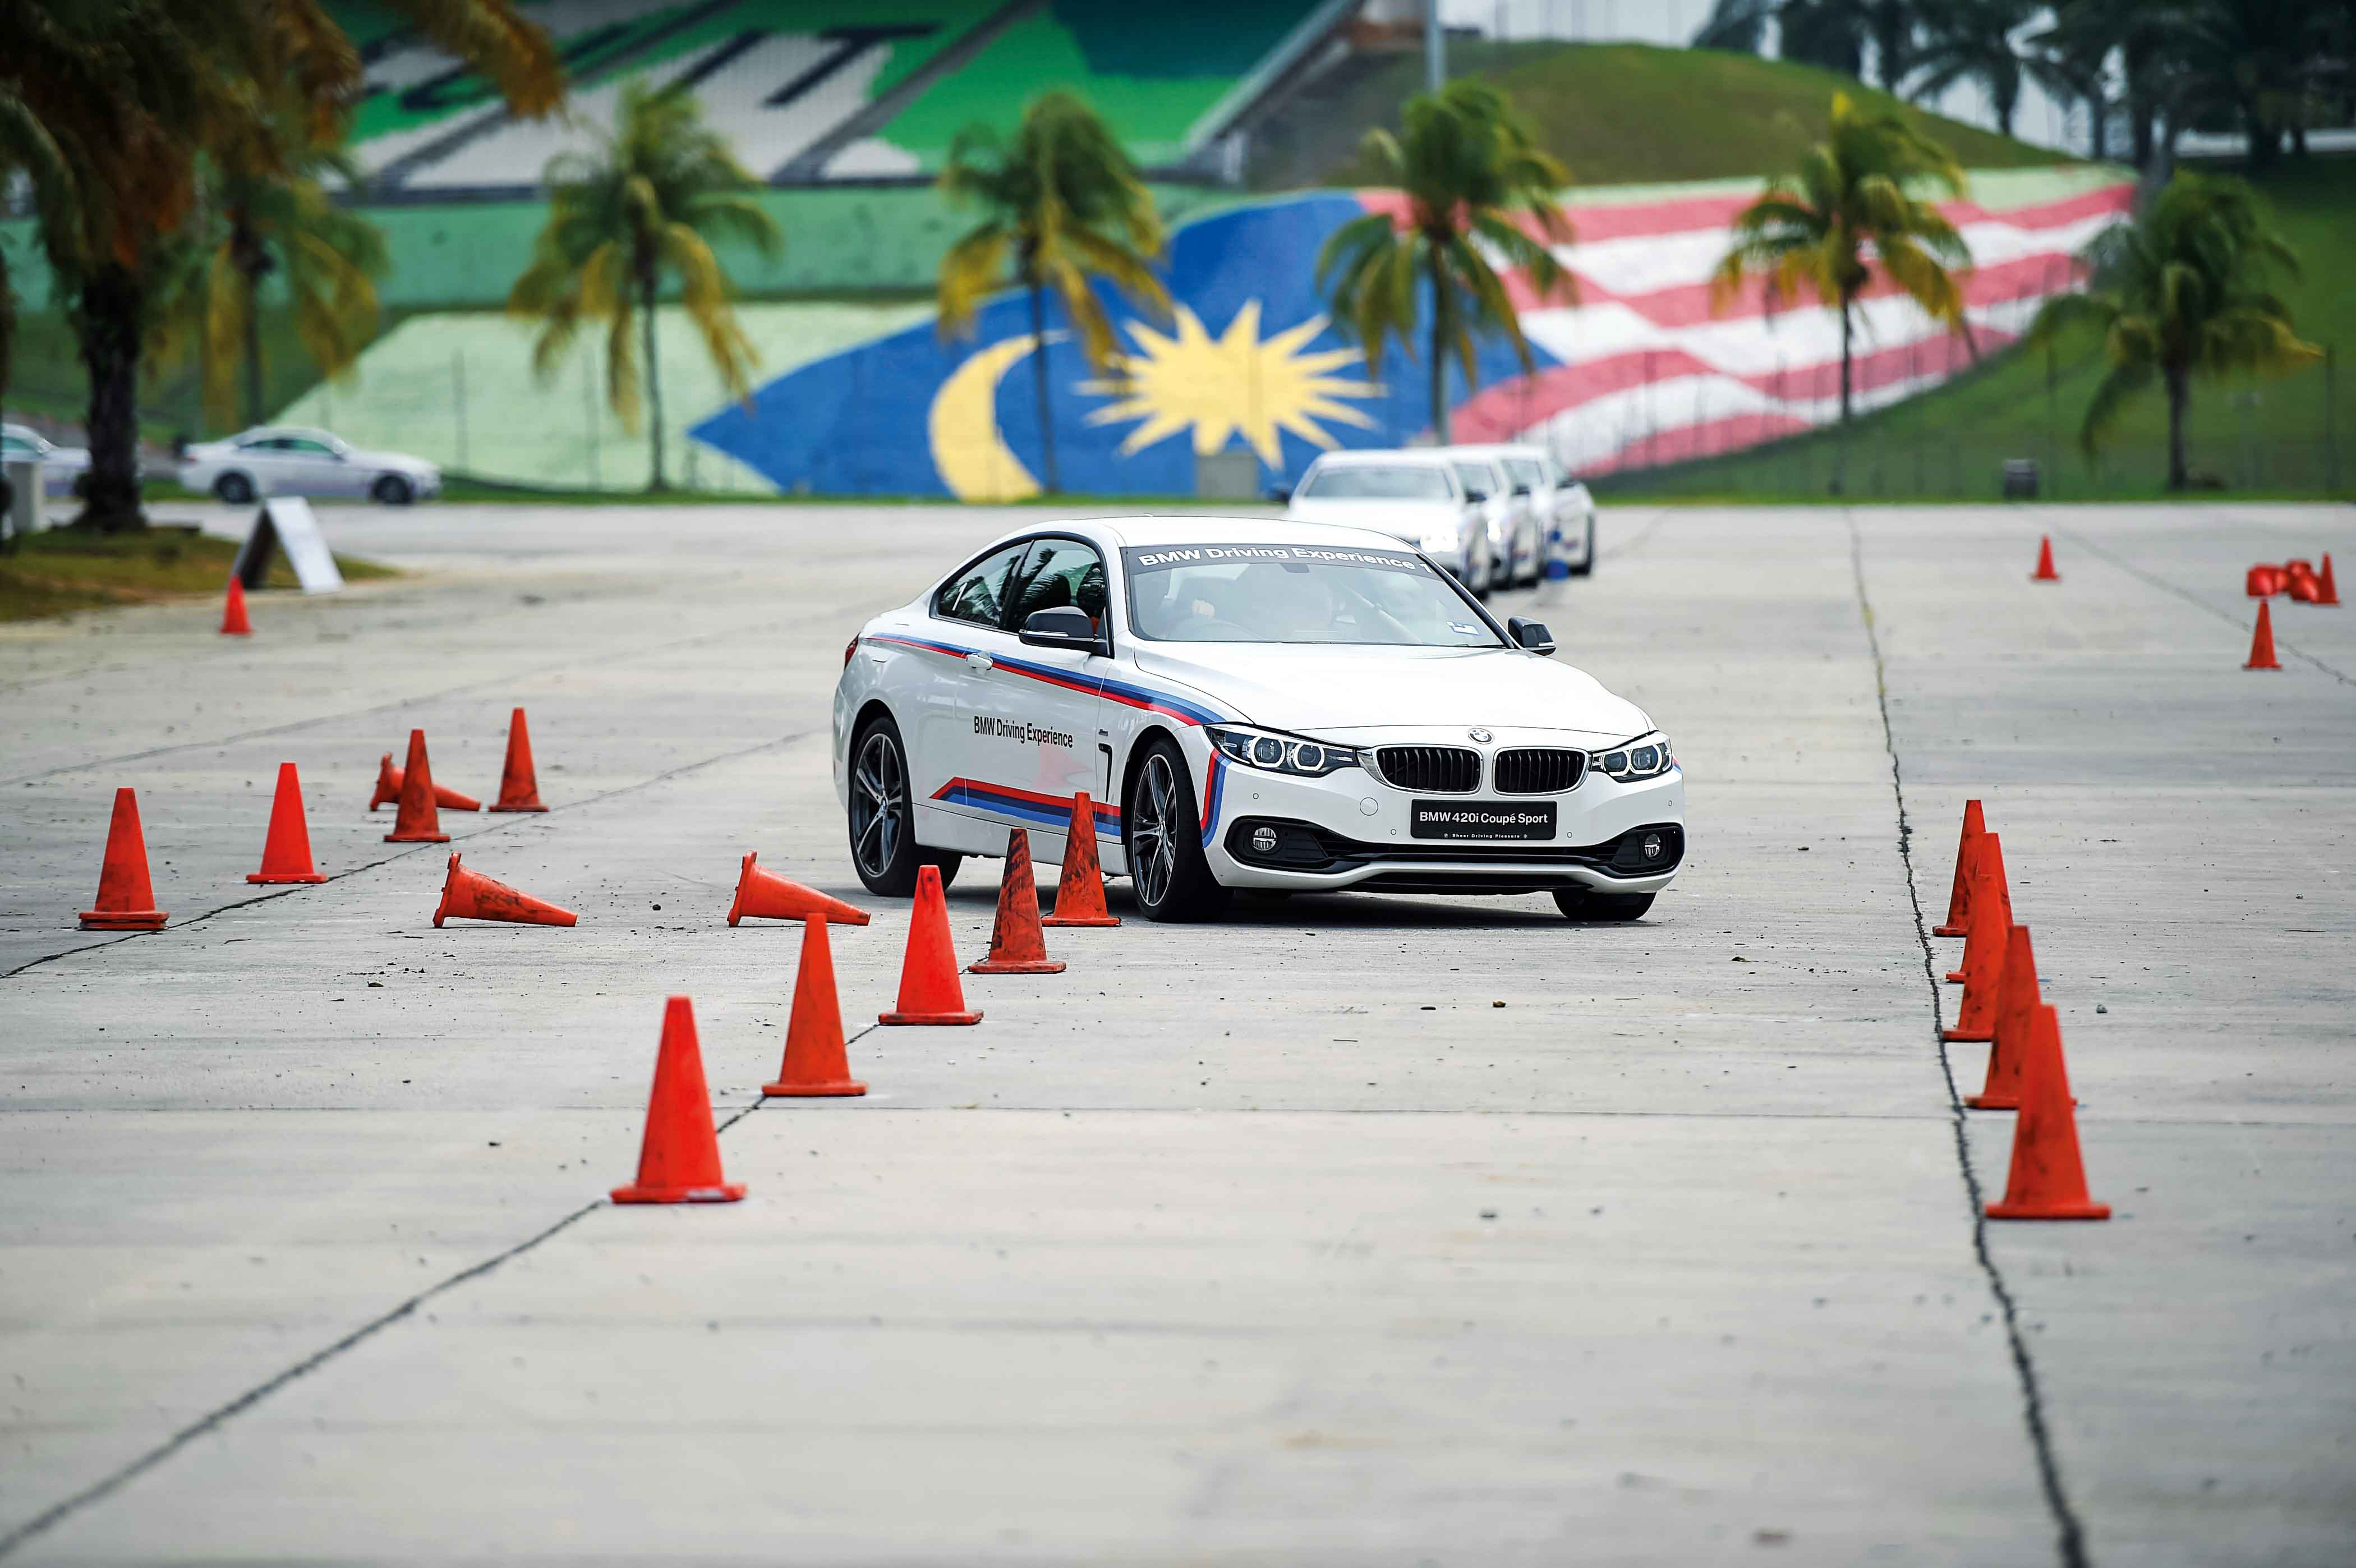 On A World-Class Racetrack With BMW